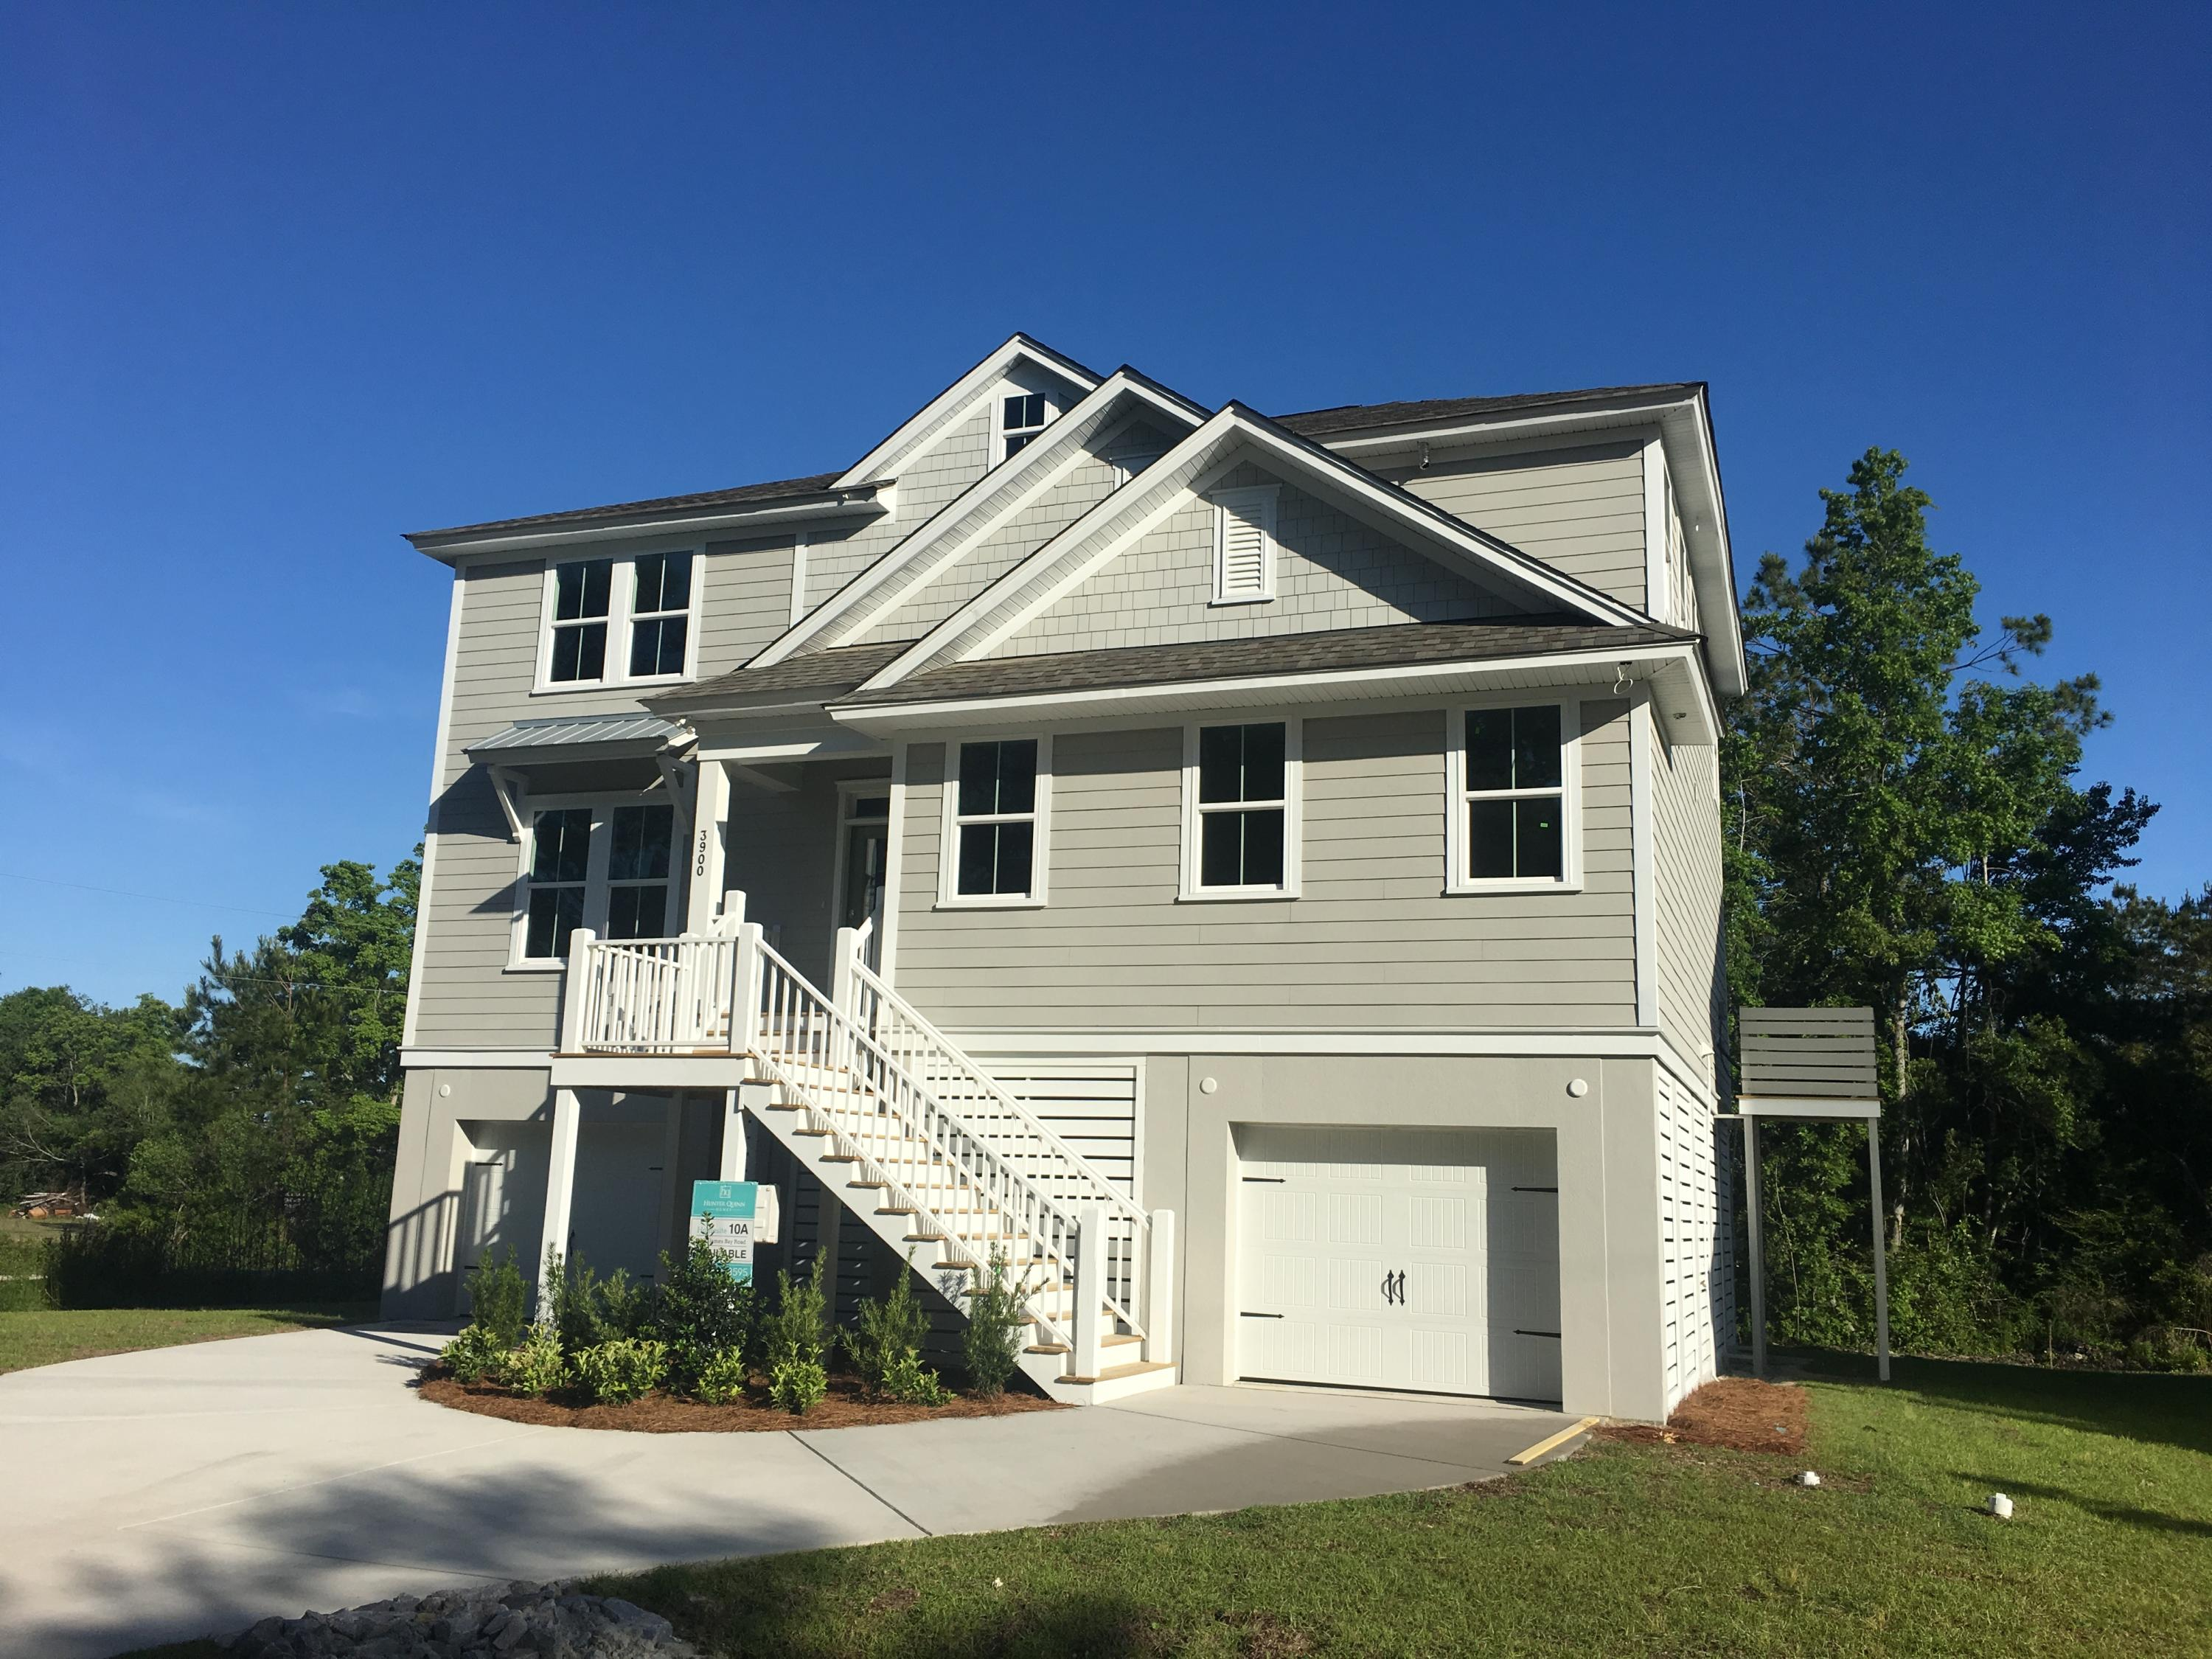 Photo of 3900 James Bay Rd, Johns Island, SC 29455